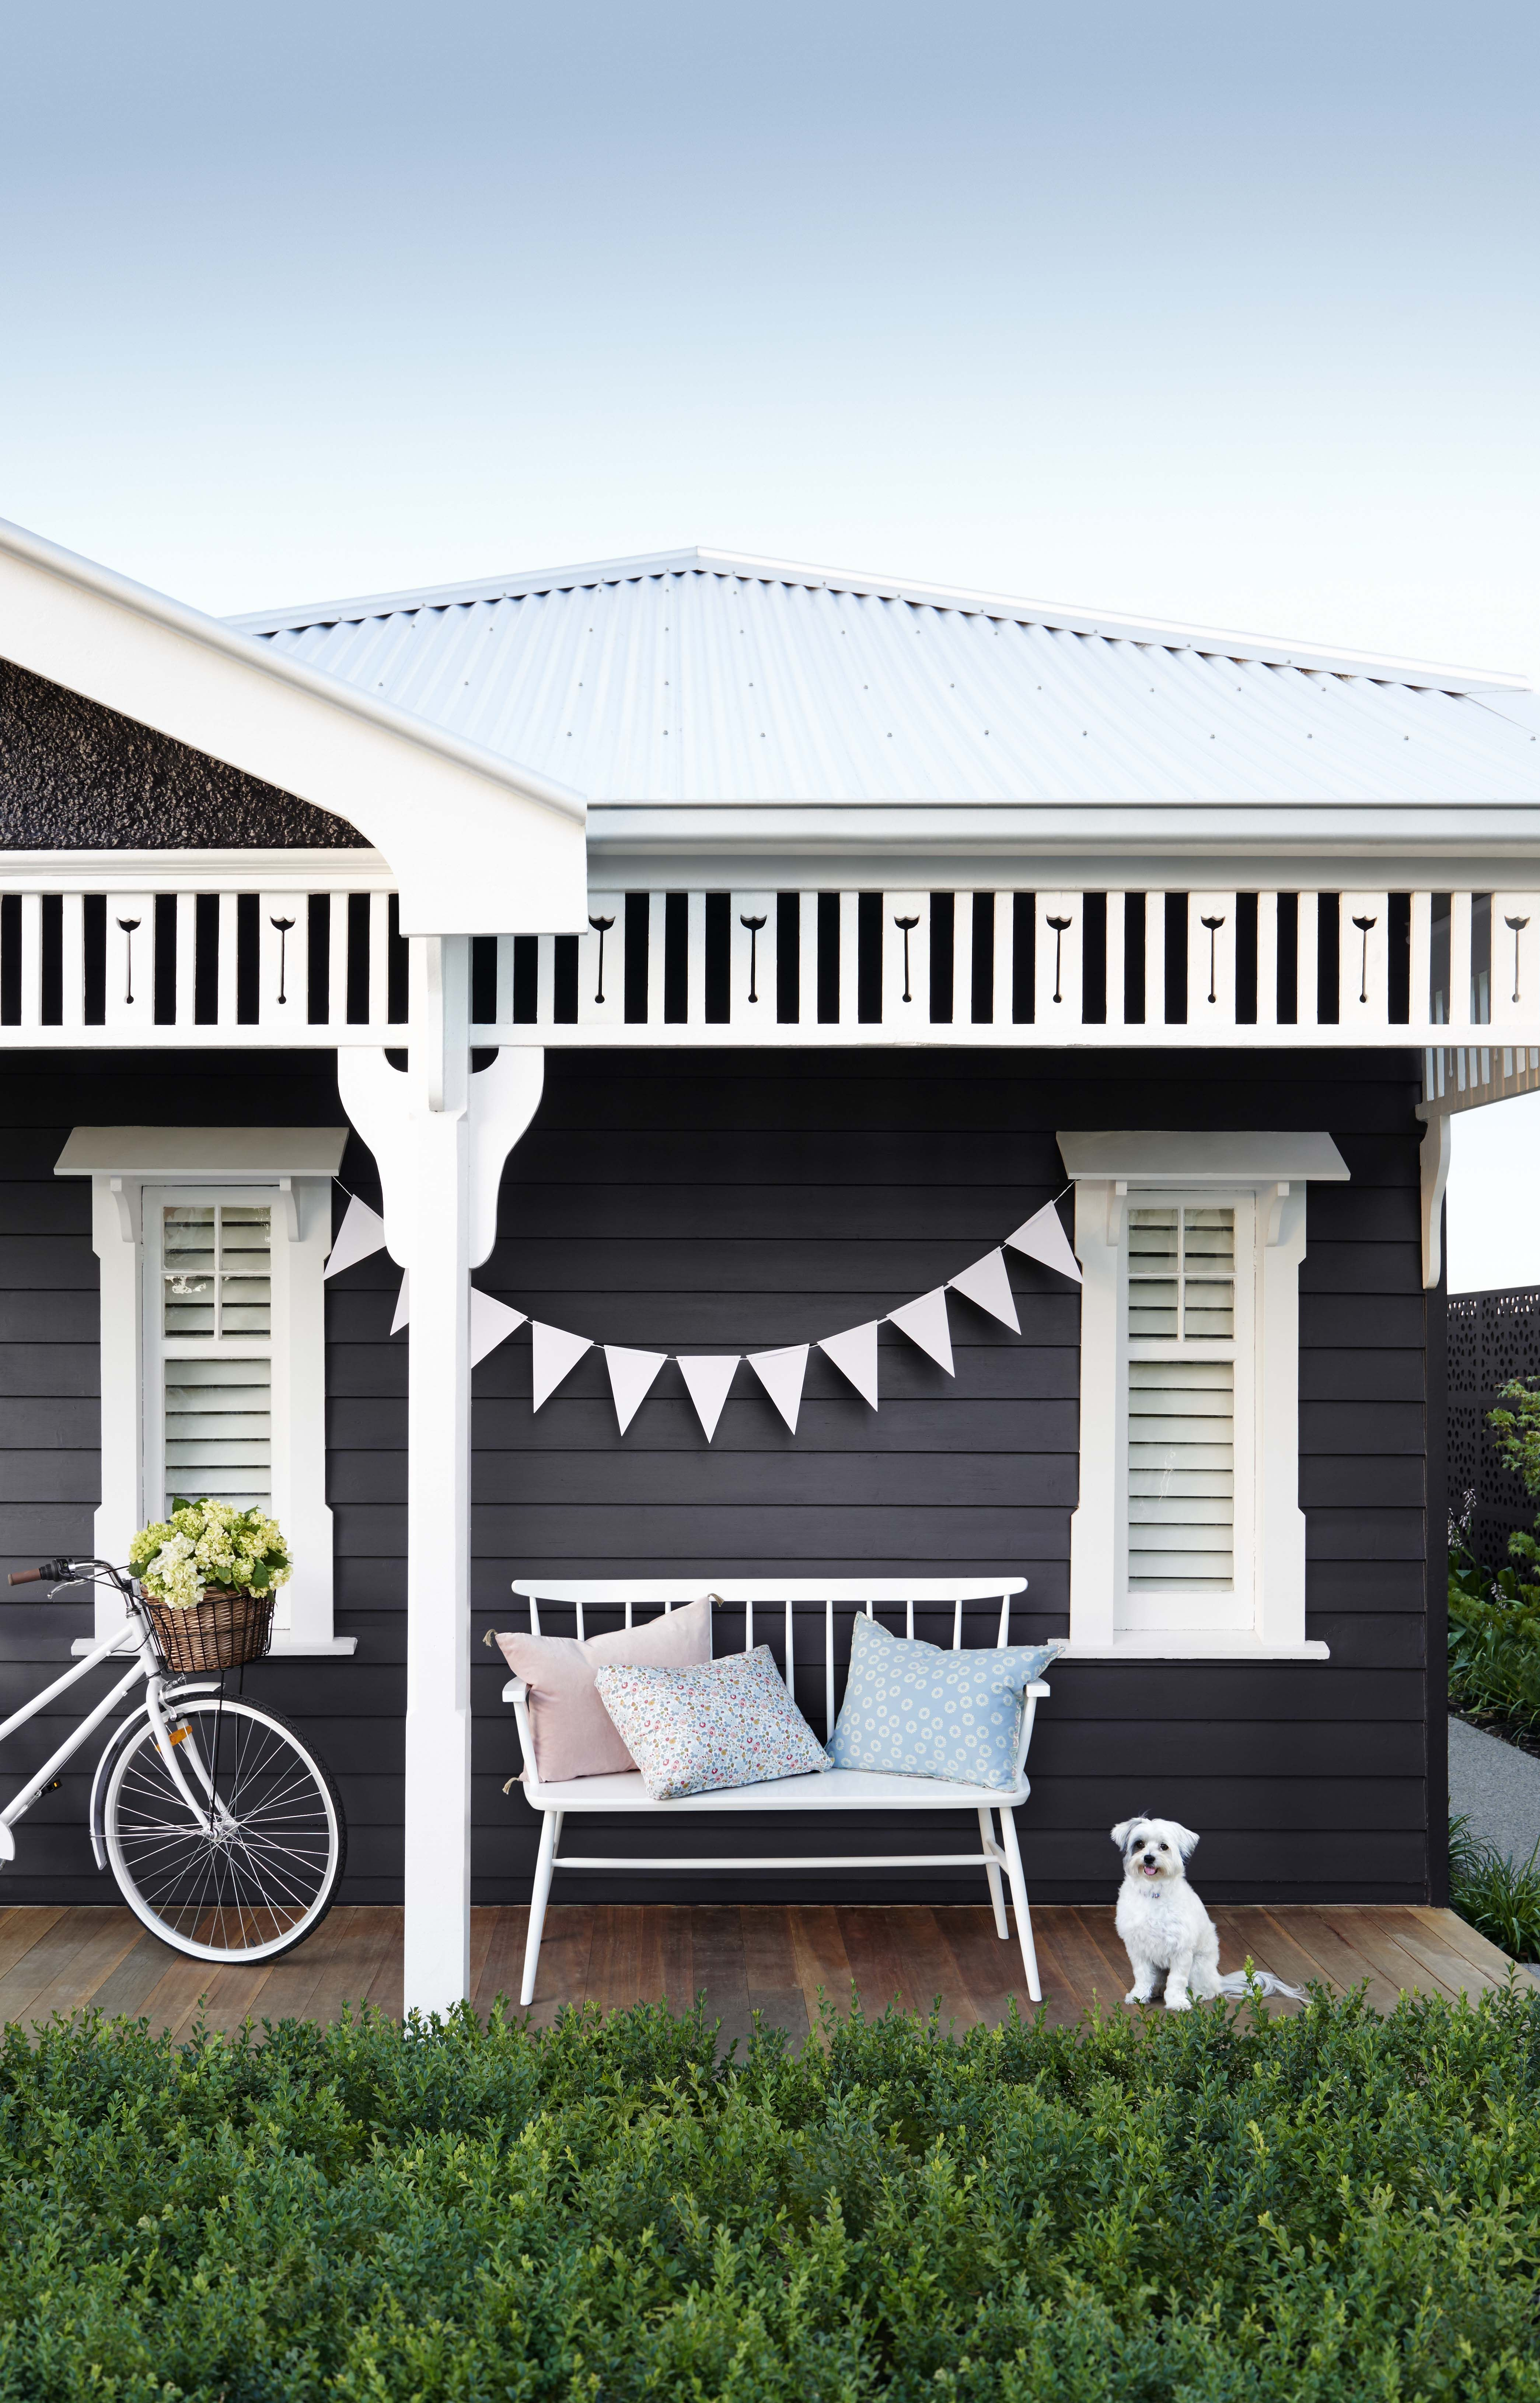 Traditional australia federation exterior inspirations paint - Exterior Paint Haymes Solashield First Impressions Count So Make Your Statement With Haymes Solashield